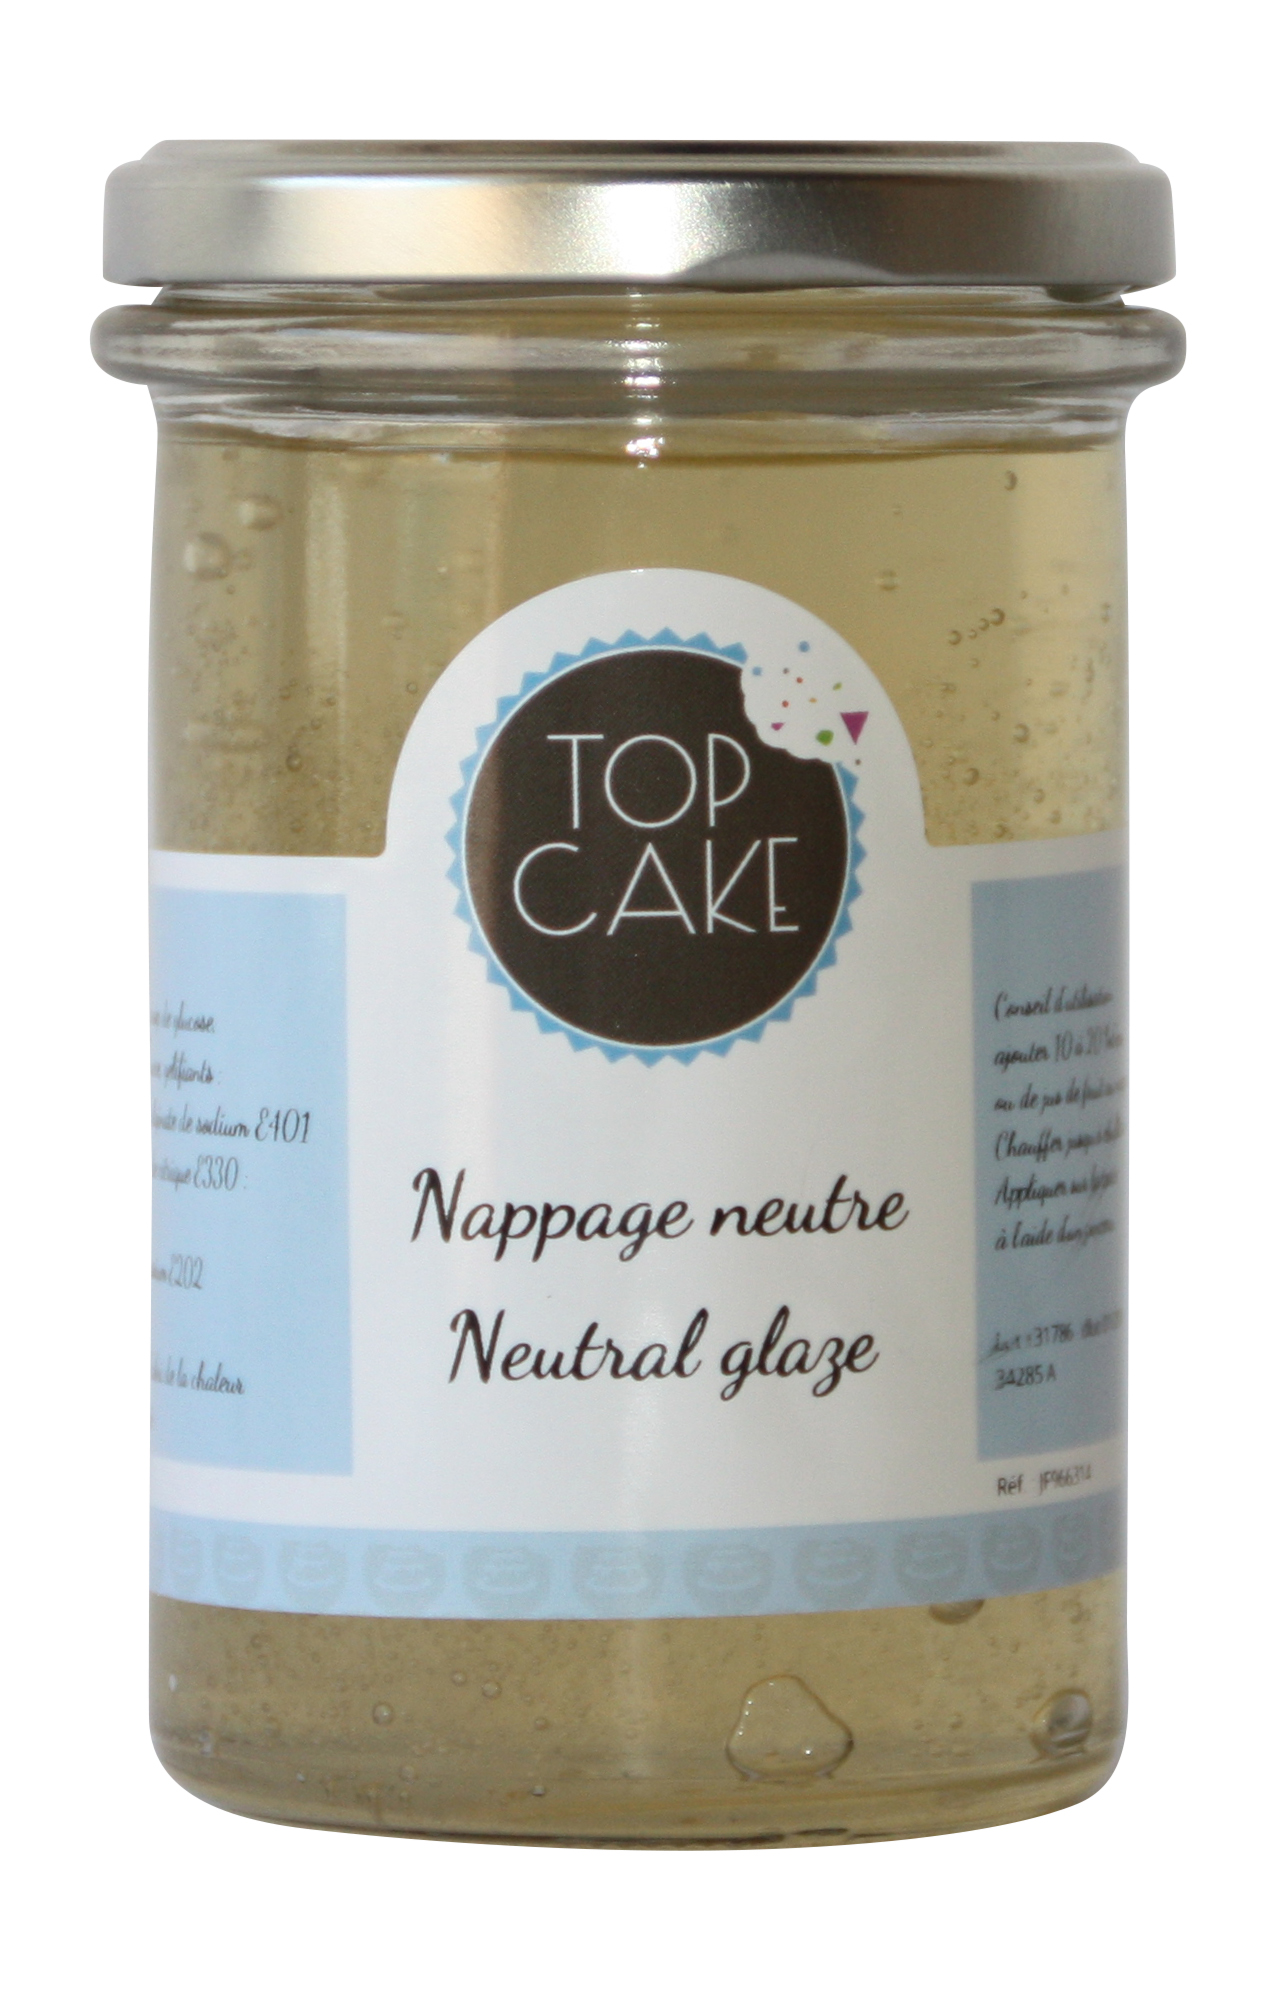 Nappage neutre - 330g - Top Cake